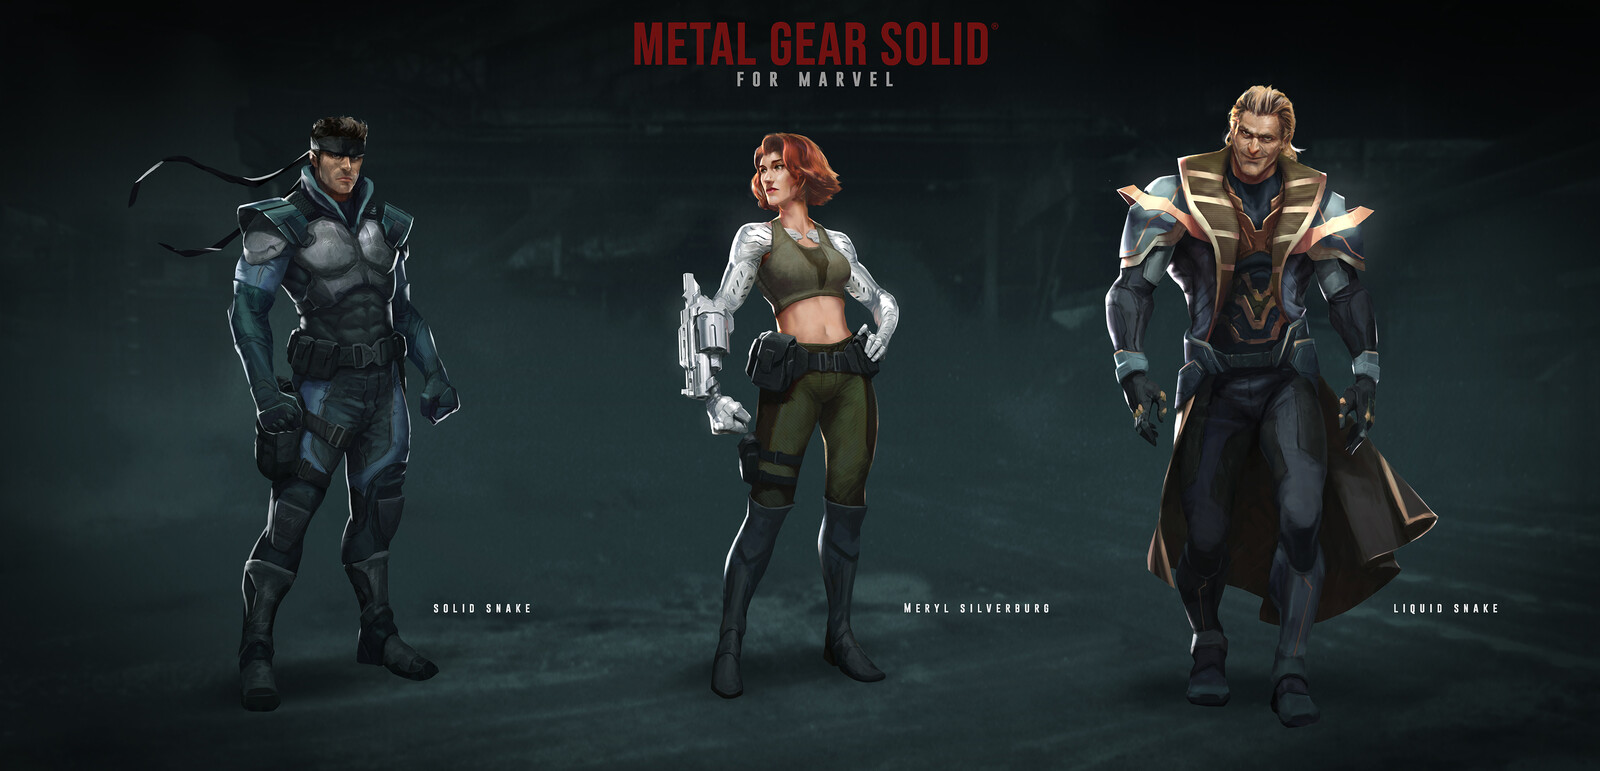 Personal take on Metal Gear Solid